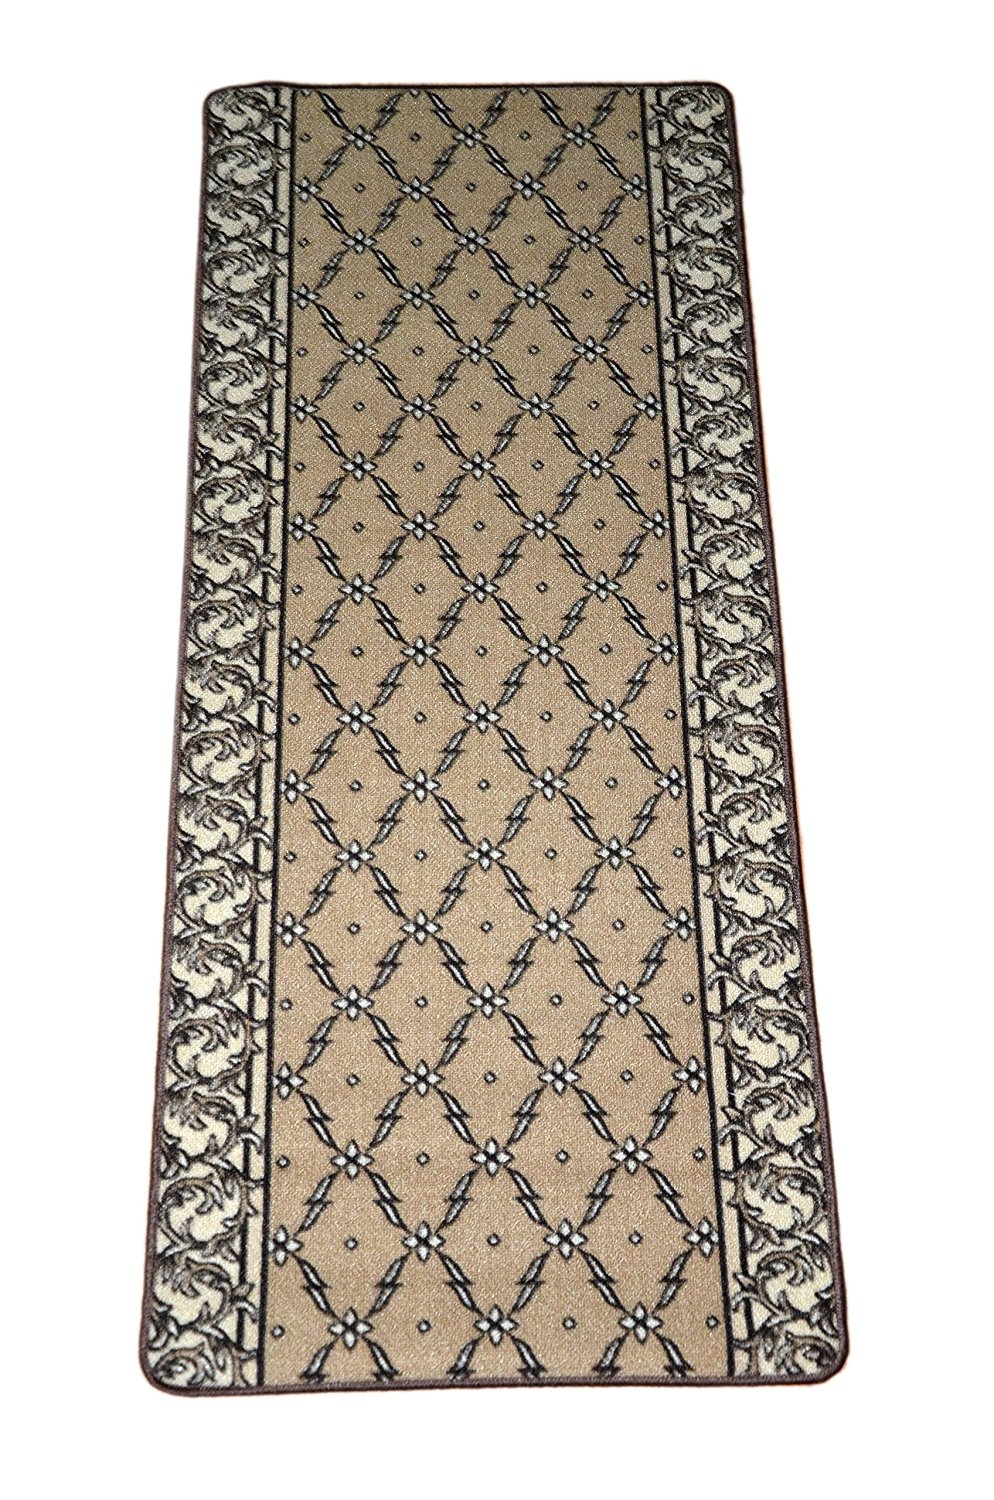 20 Best Collection Of Rug Runners For Hallways